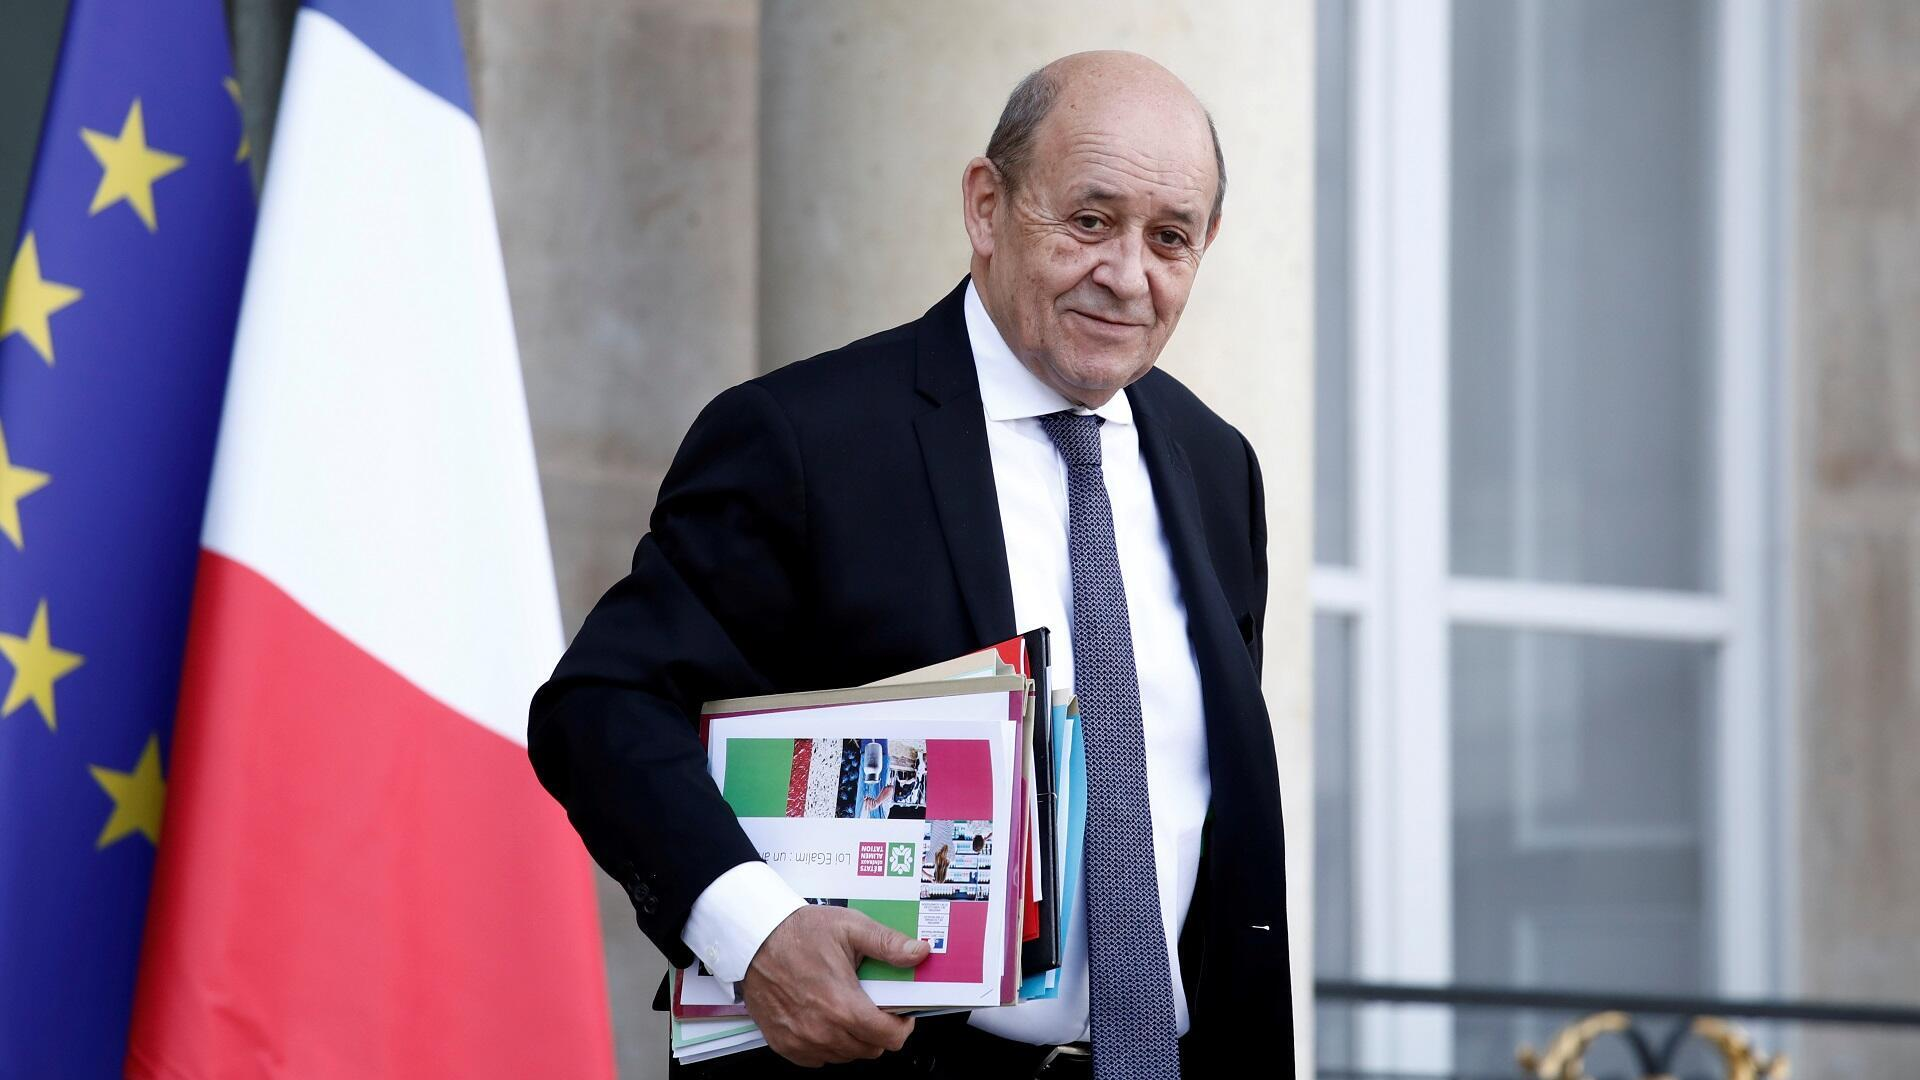 French Foreign Minister Jean-Yves Le Drian leaves the Élysée Palace following the weekly cabinet meeting in Paris, France, October 21, 2019.